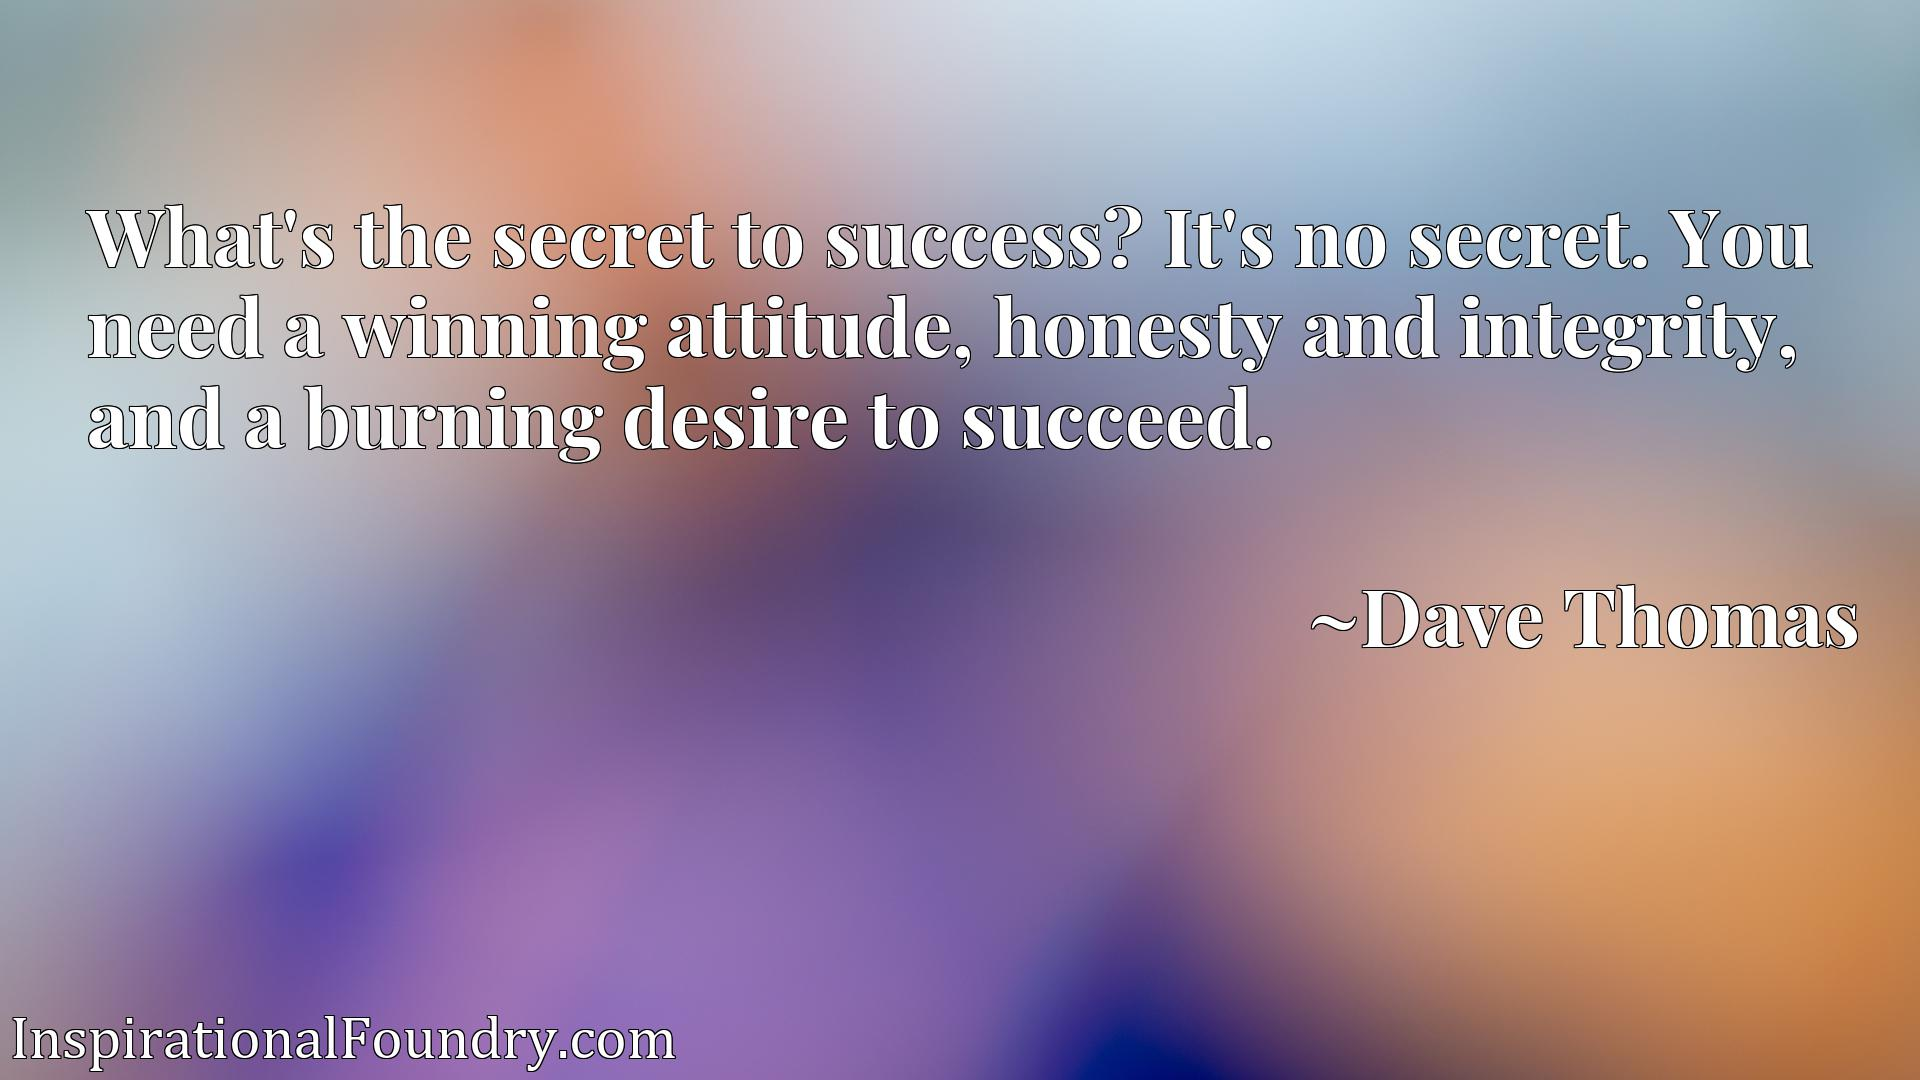 What's the secret to success? It's no secret. You need a winning attitude, honesty and integrity, and a burning desire to succeed.